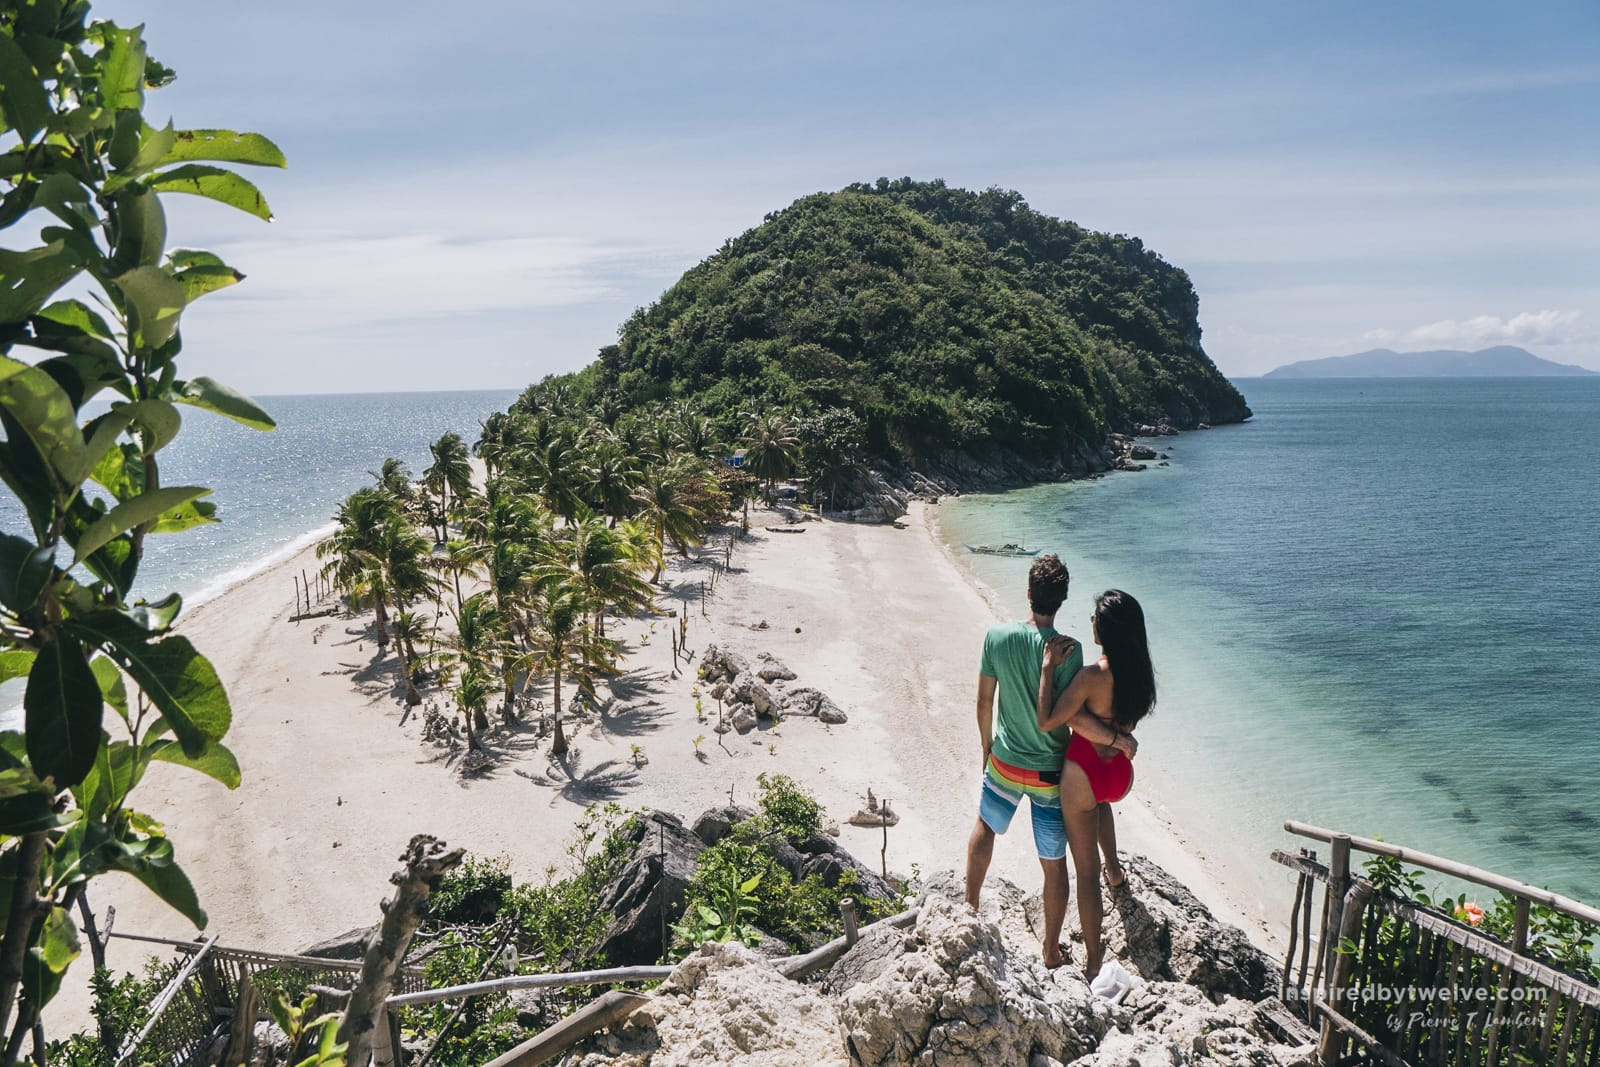 Gigantes Islands – Complete Island Tour Guide